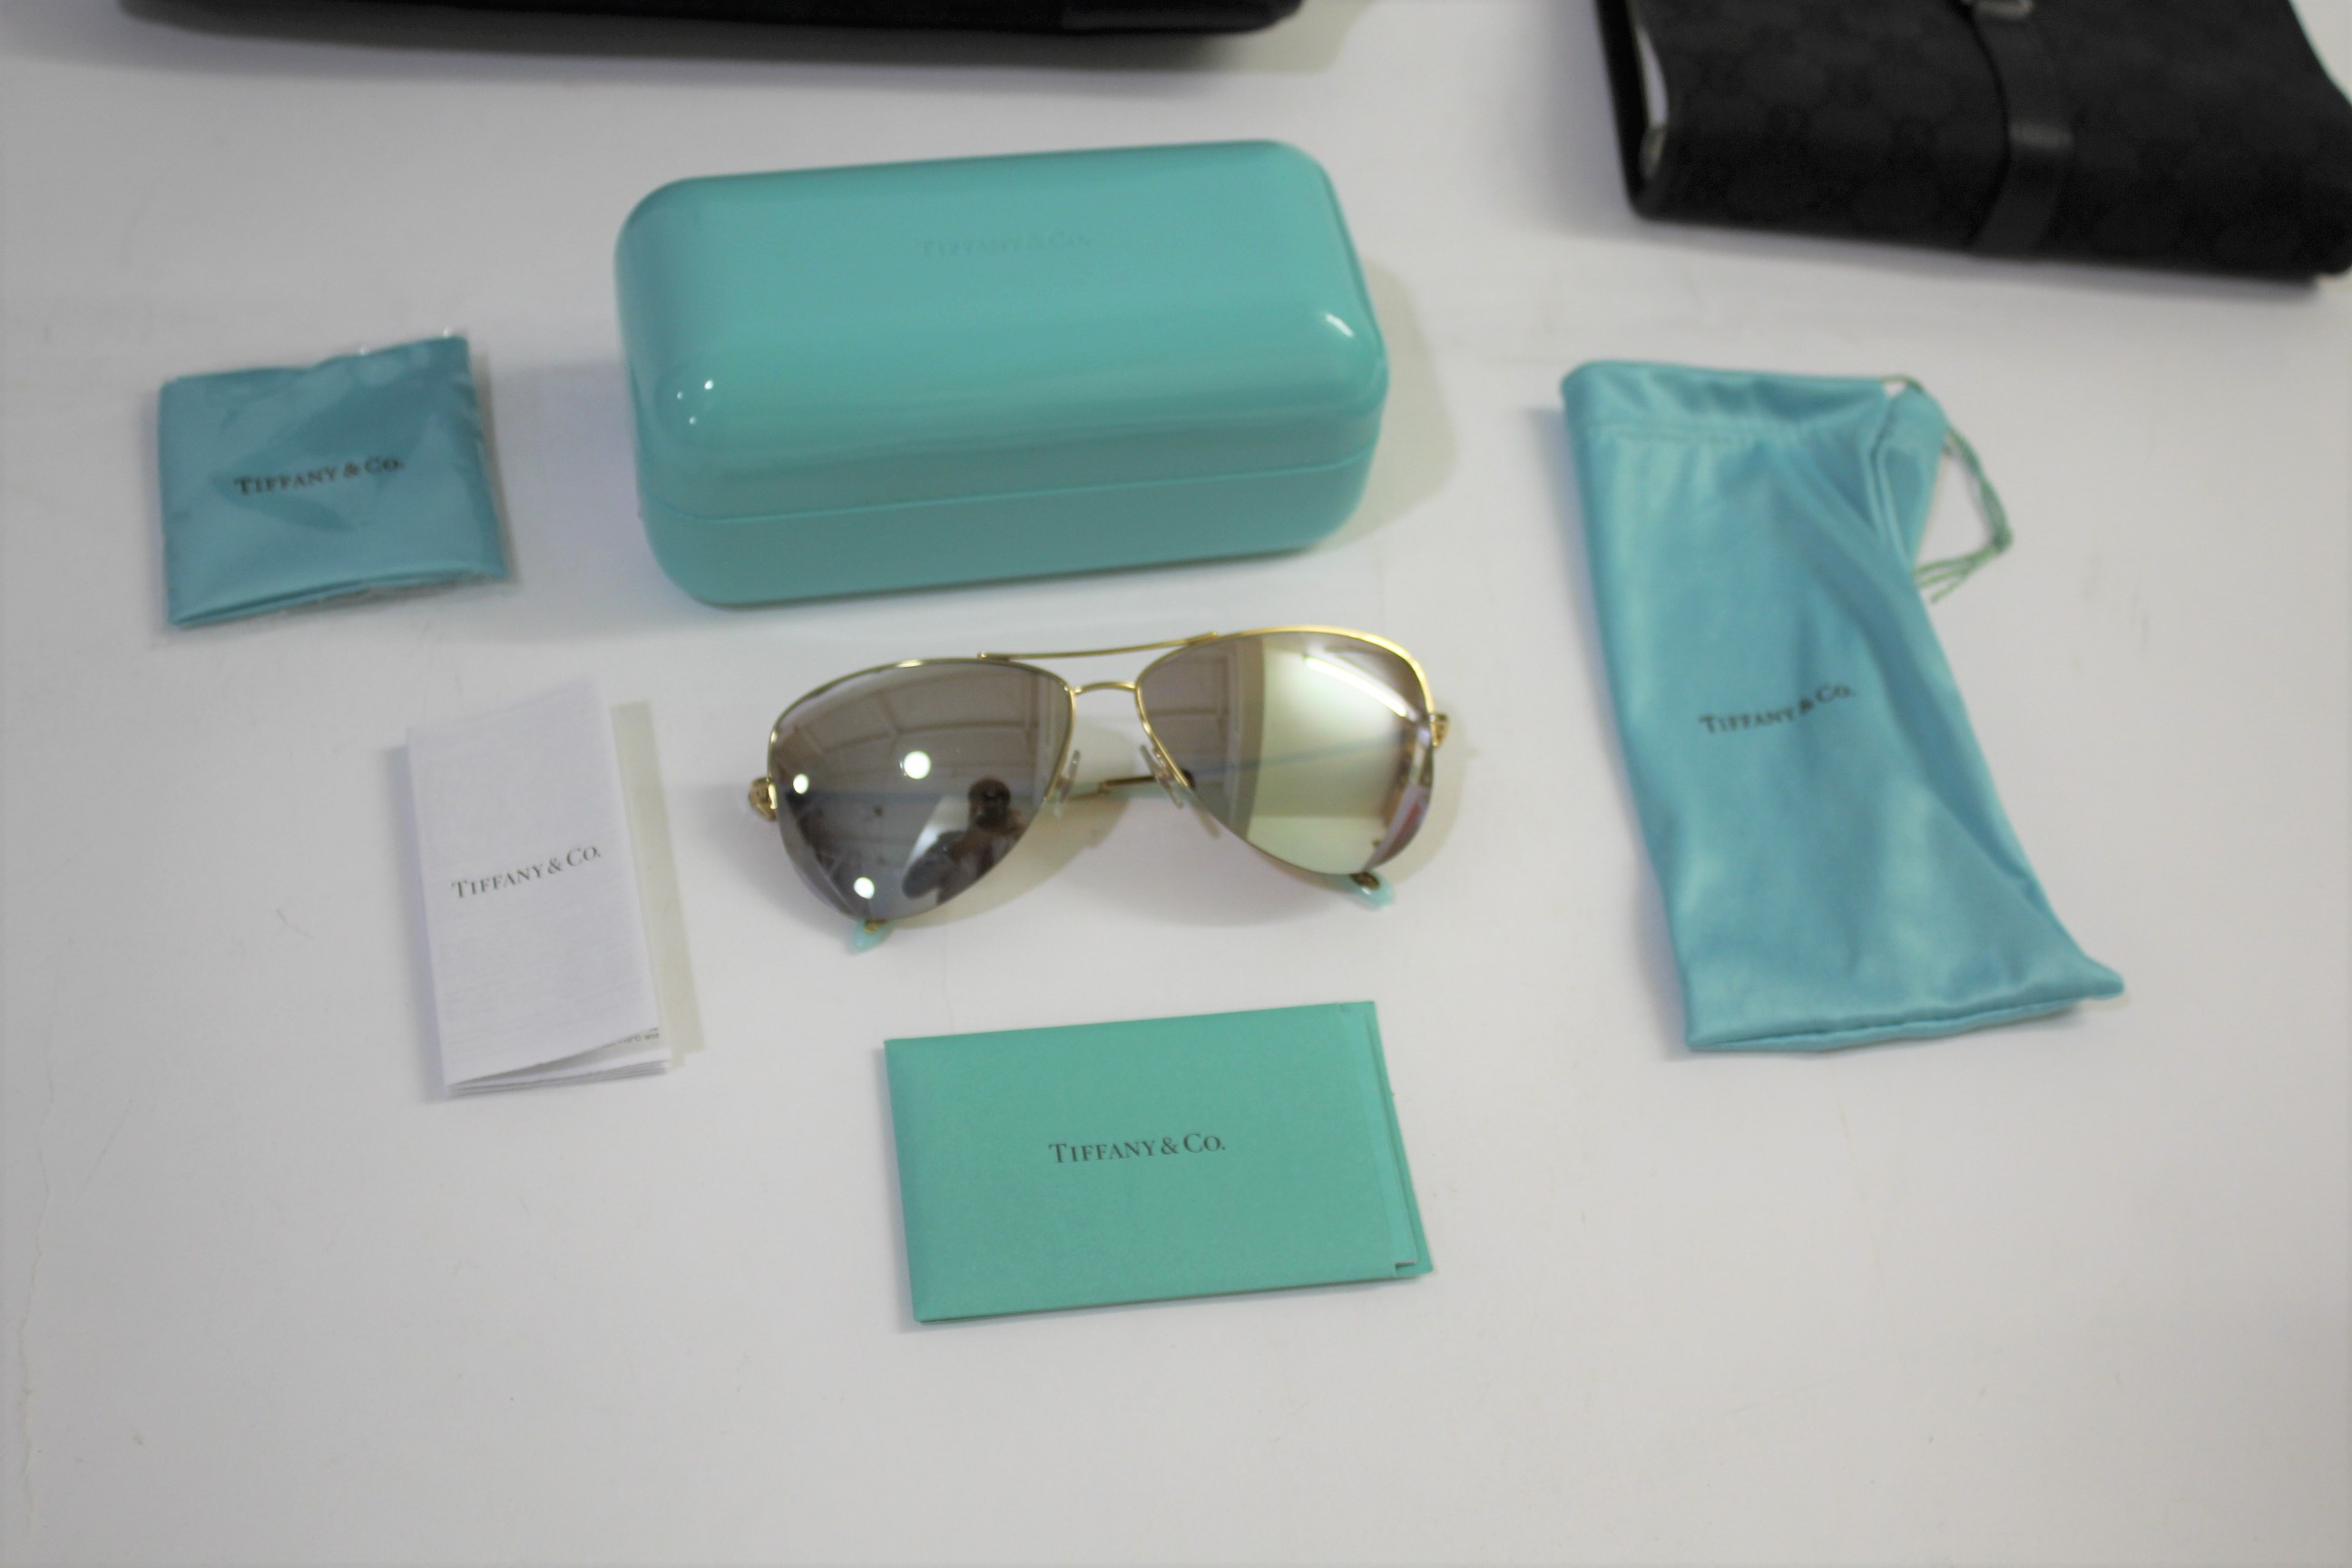 Lot 1907 - GUCCI & TIFFANY including a pair of Tiffany & Co sunglasses, in a turquoise case and with various